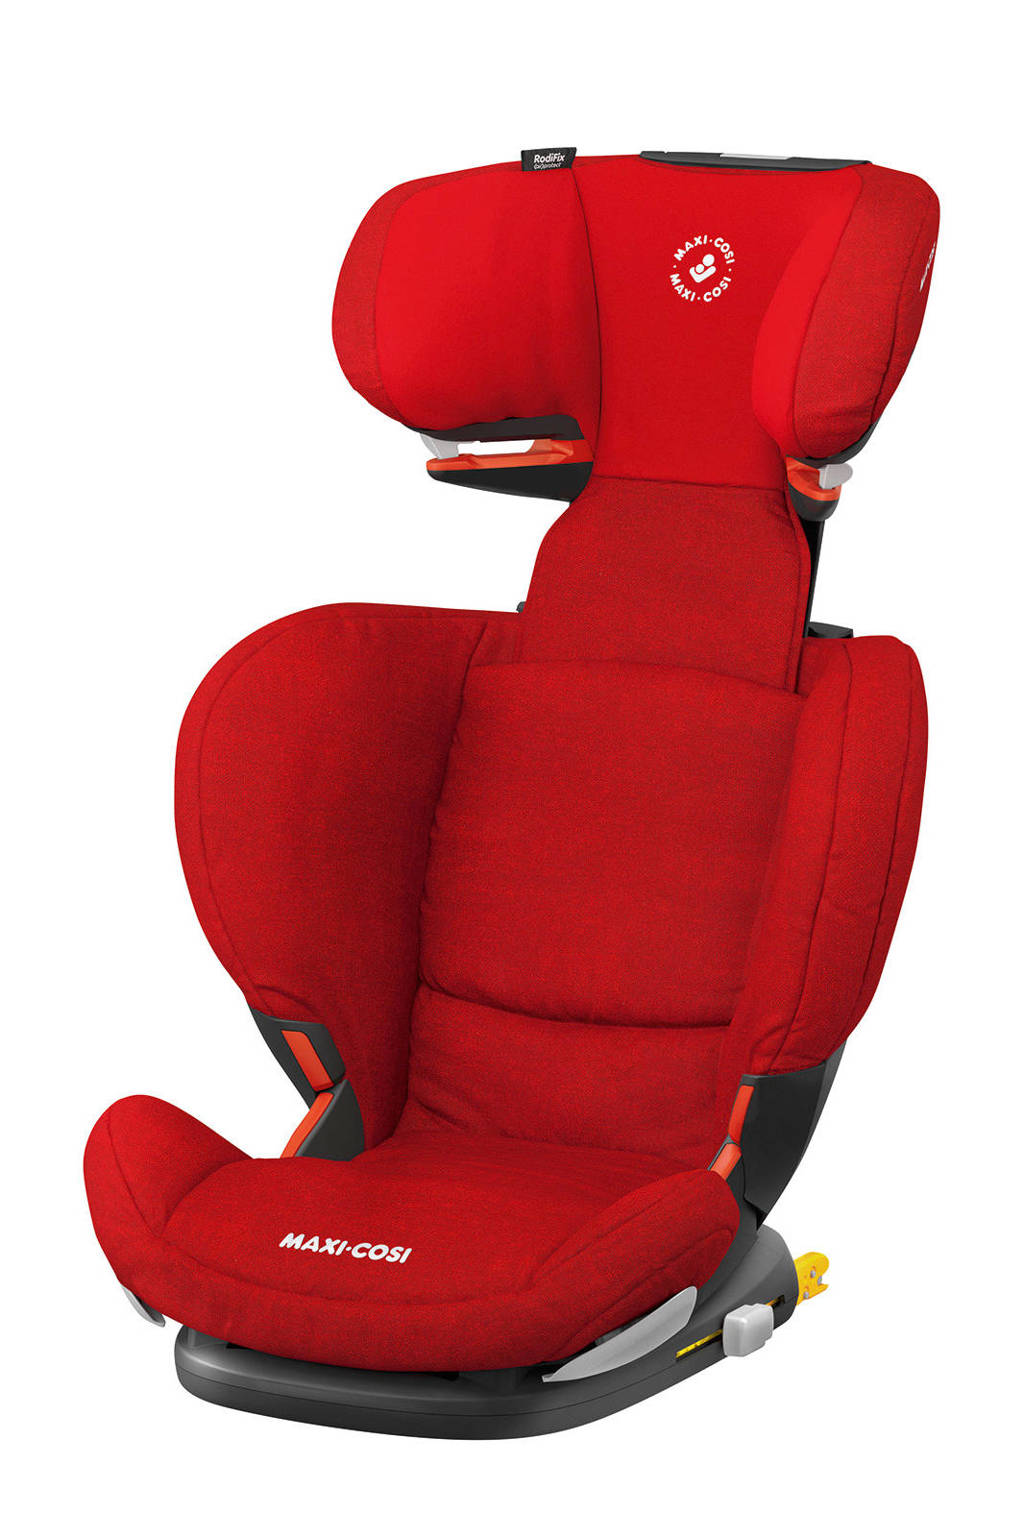 Maxi-Cosi Rodifix Air Protect autostoel, Nomad red